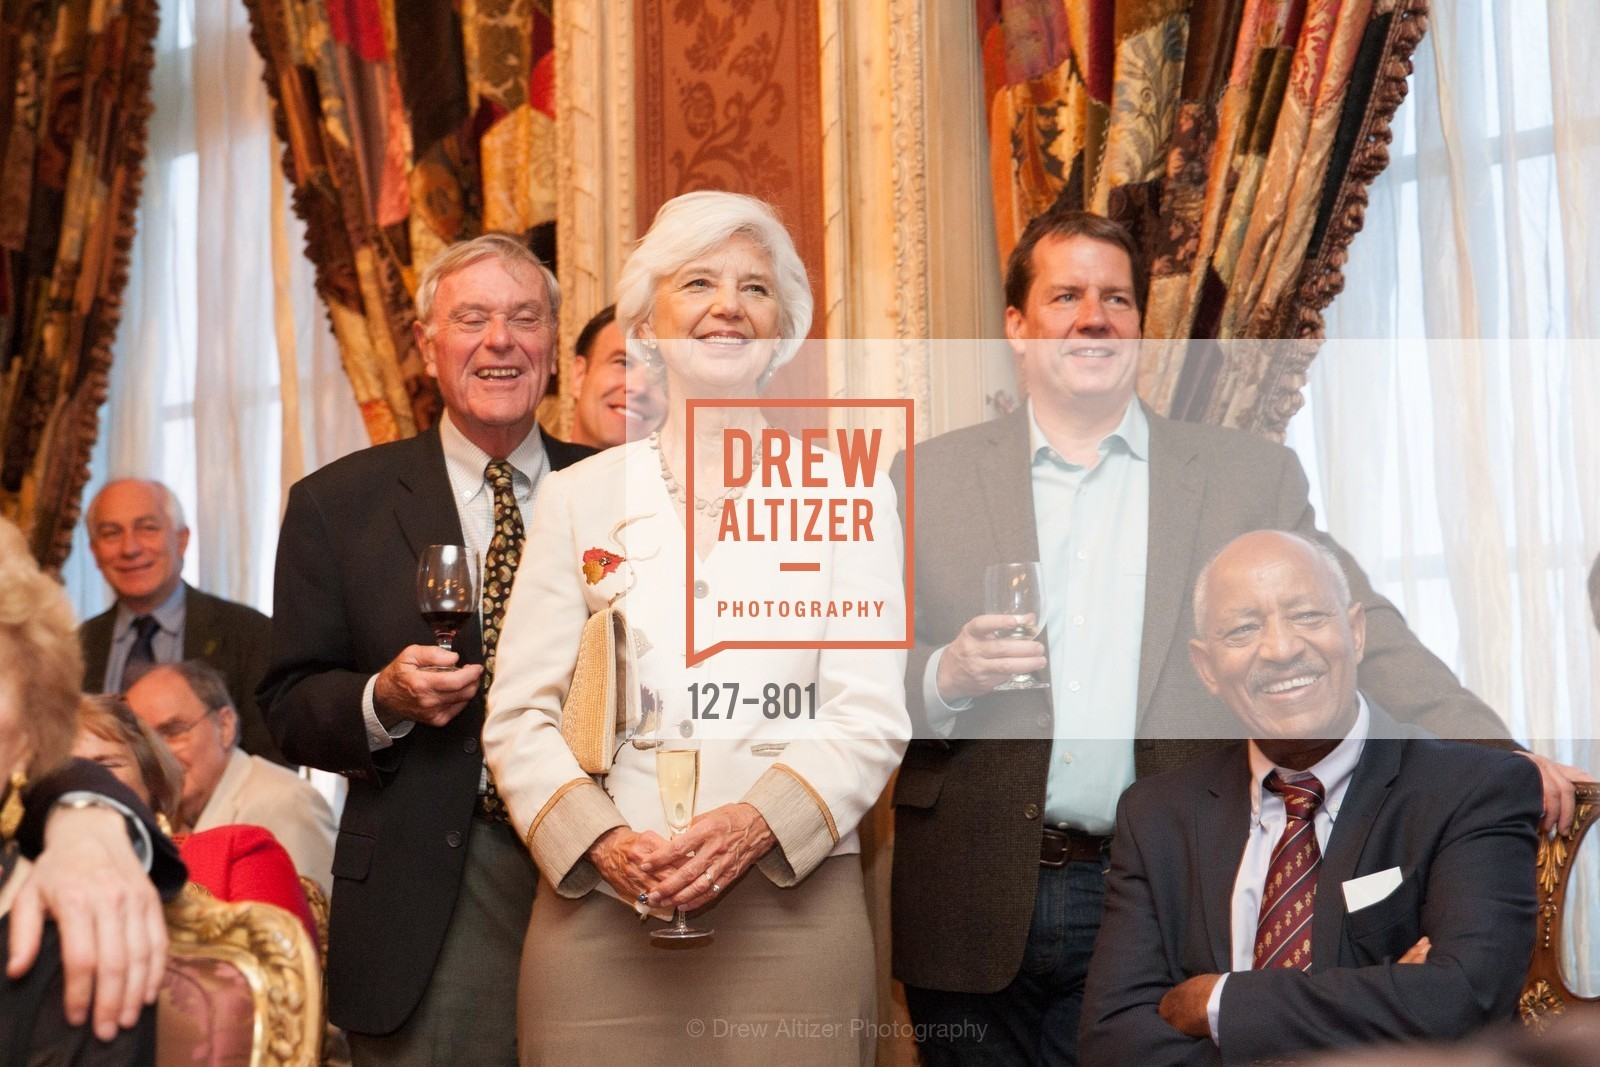 Clem Shute, Sherry Shute, Derhame Asfaw, GETTY Hosts Leakey Foundation Dinner, US, April 24th, 2015,Drew Altizer, Drew Altizer Photography, full-service agency, private events, San Francisco photographer, photographer california